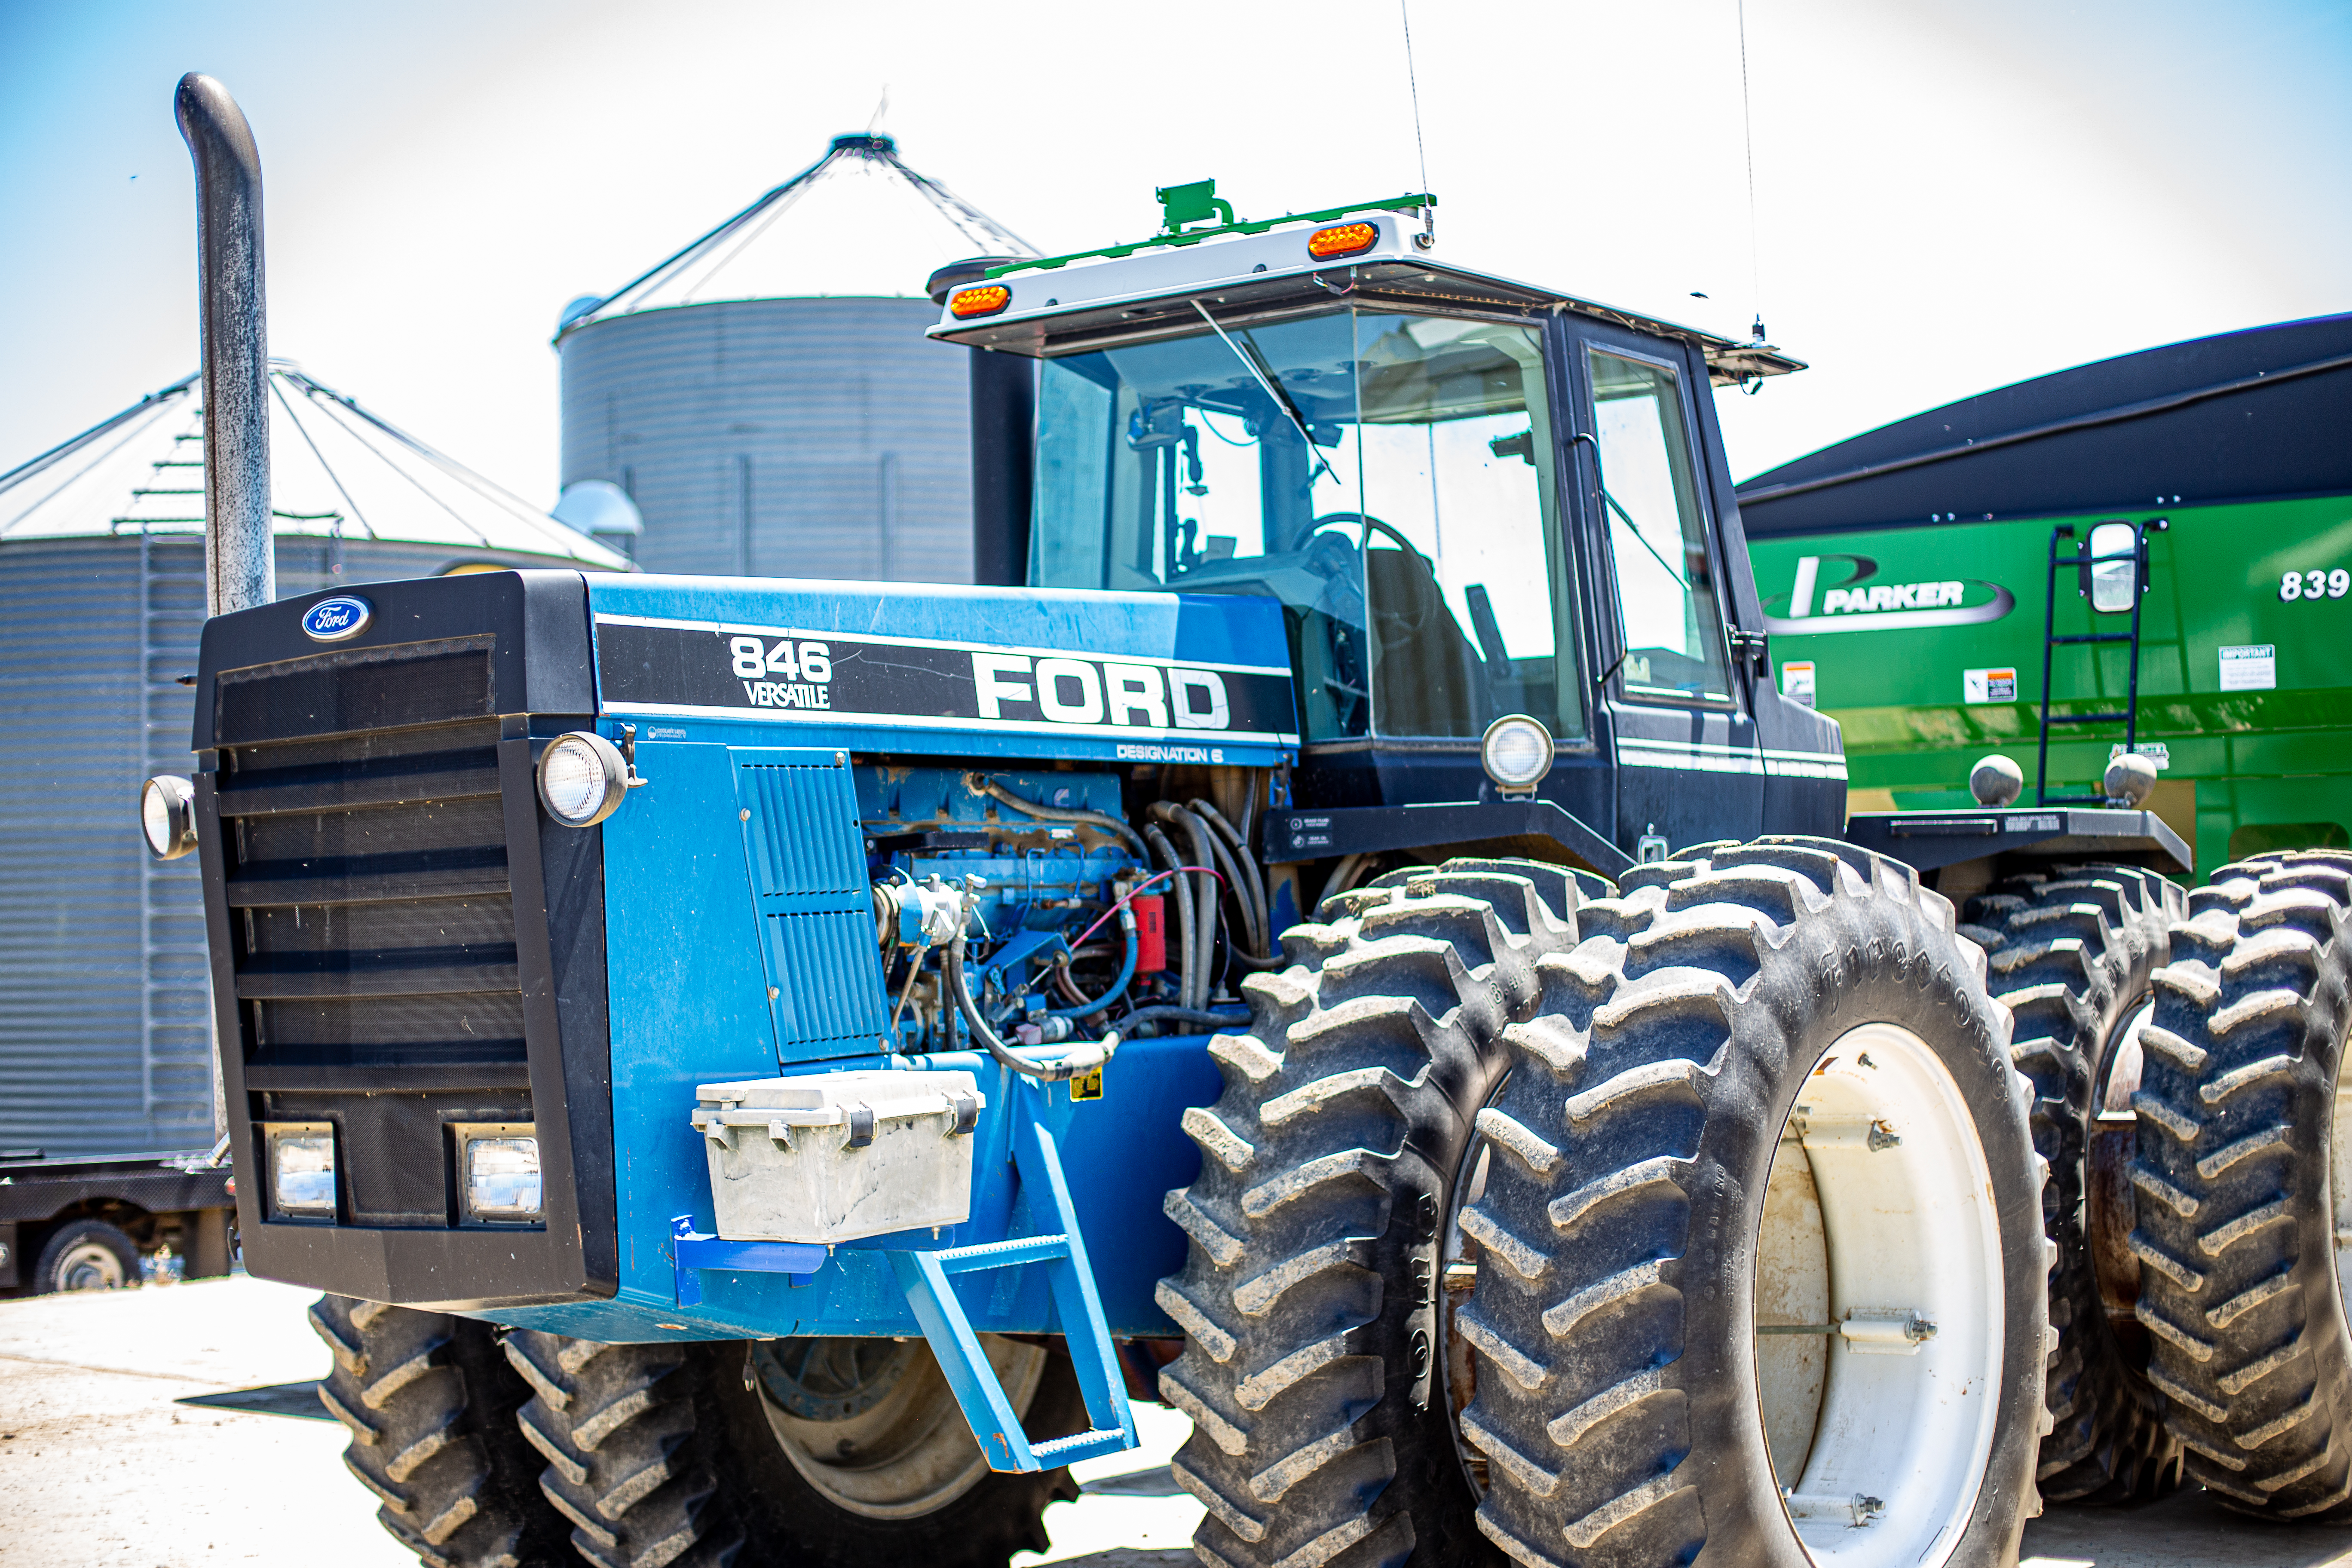 Ford Versatile 846 Tractor